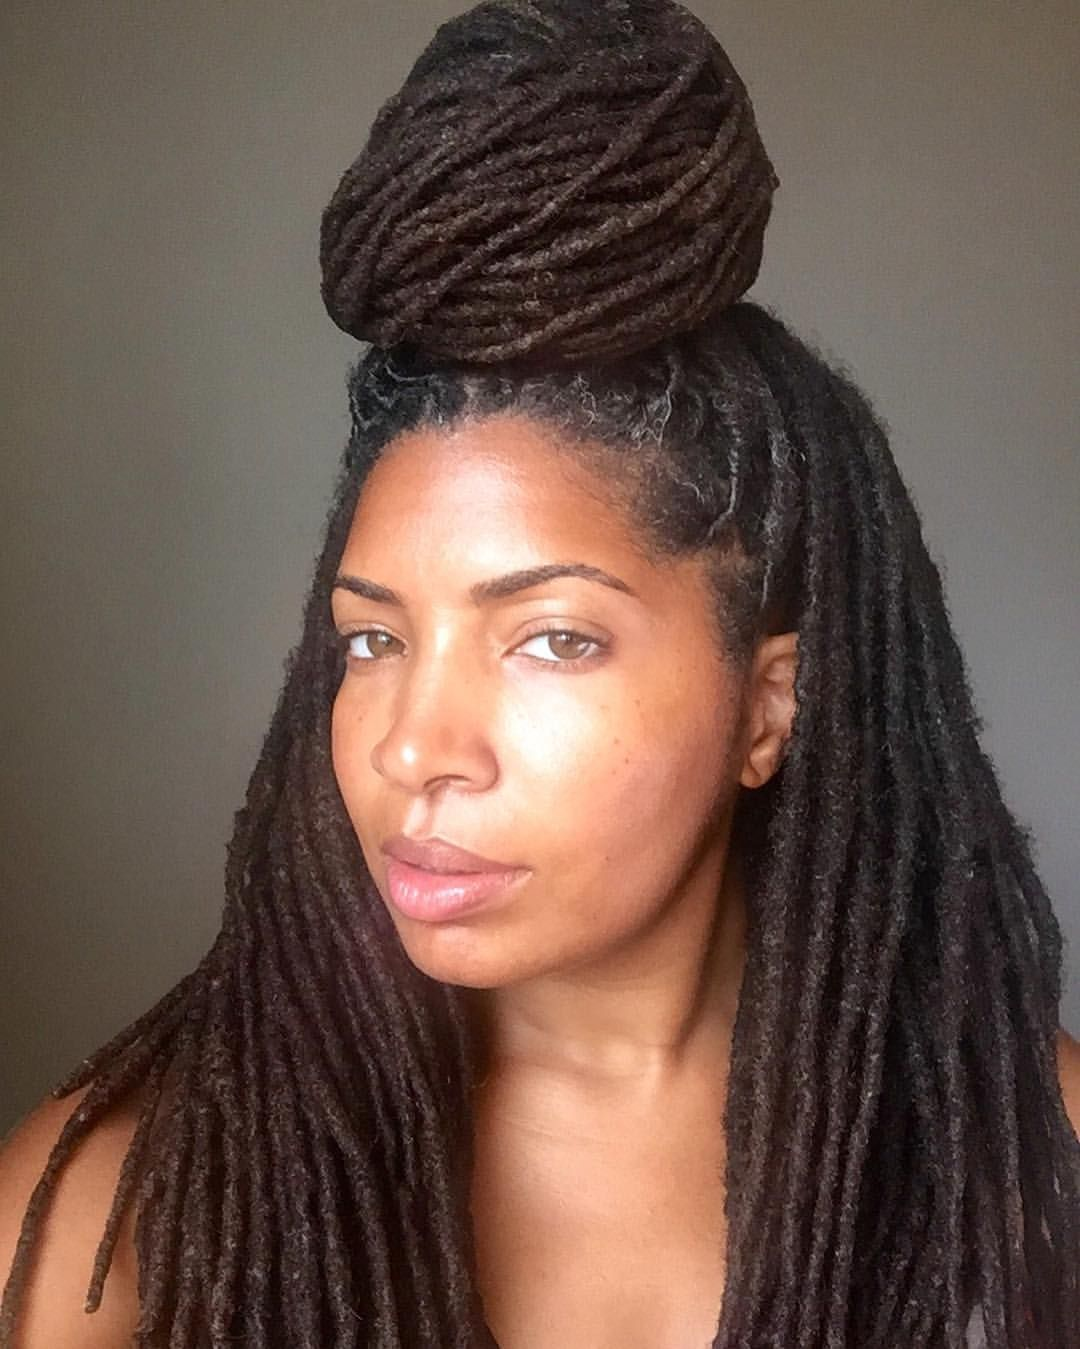 50 Awesome Lady Locks Hairstyle